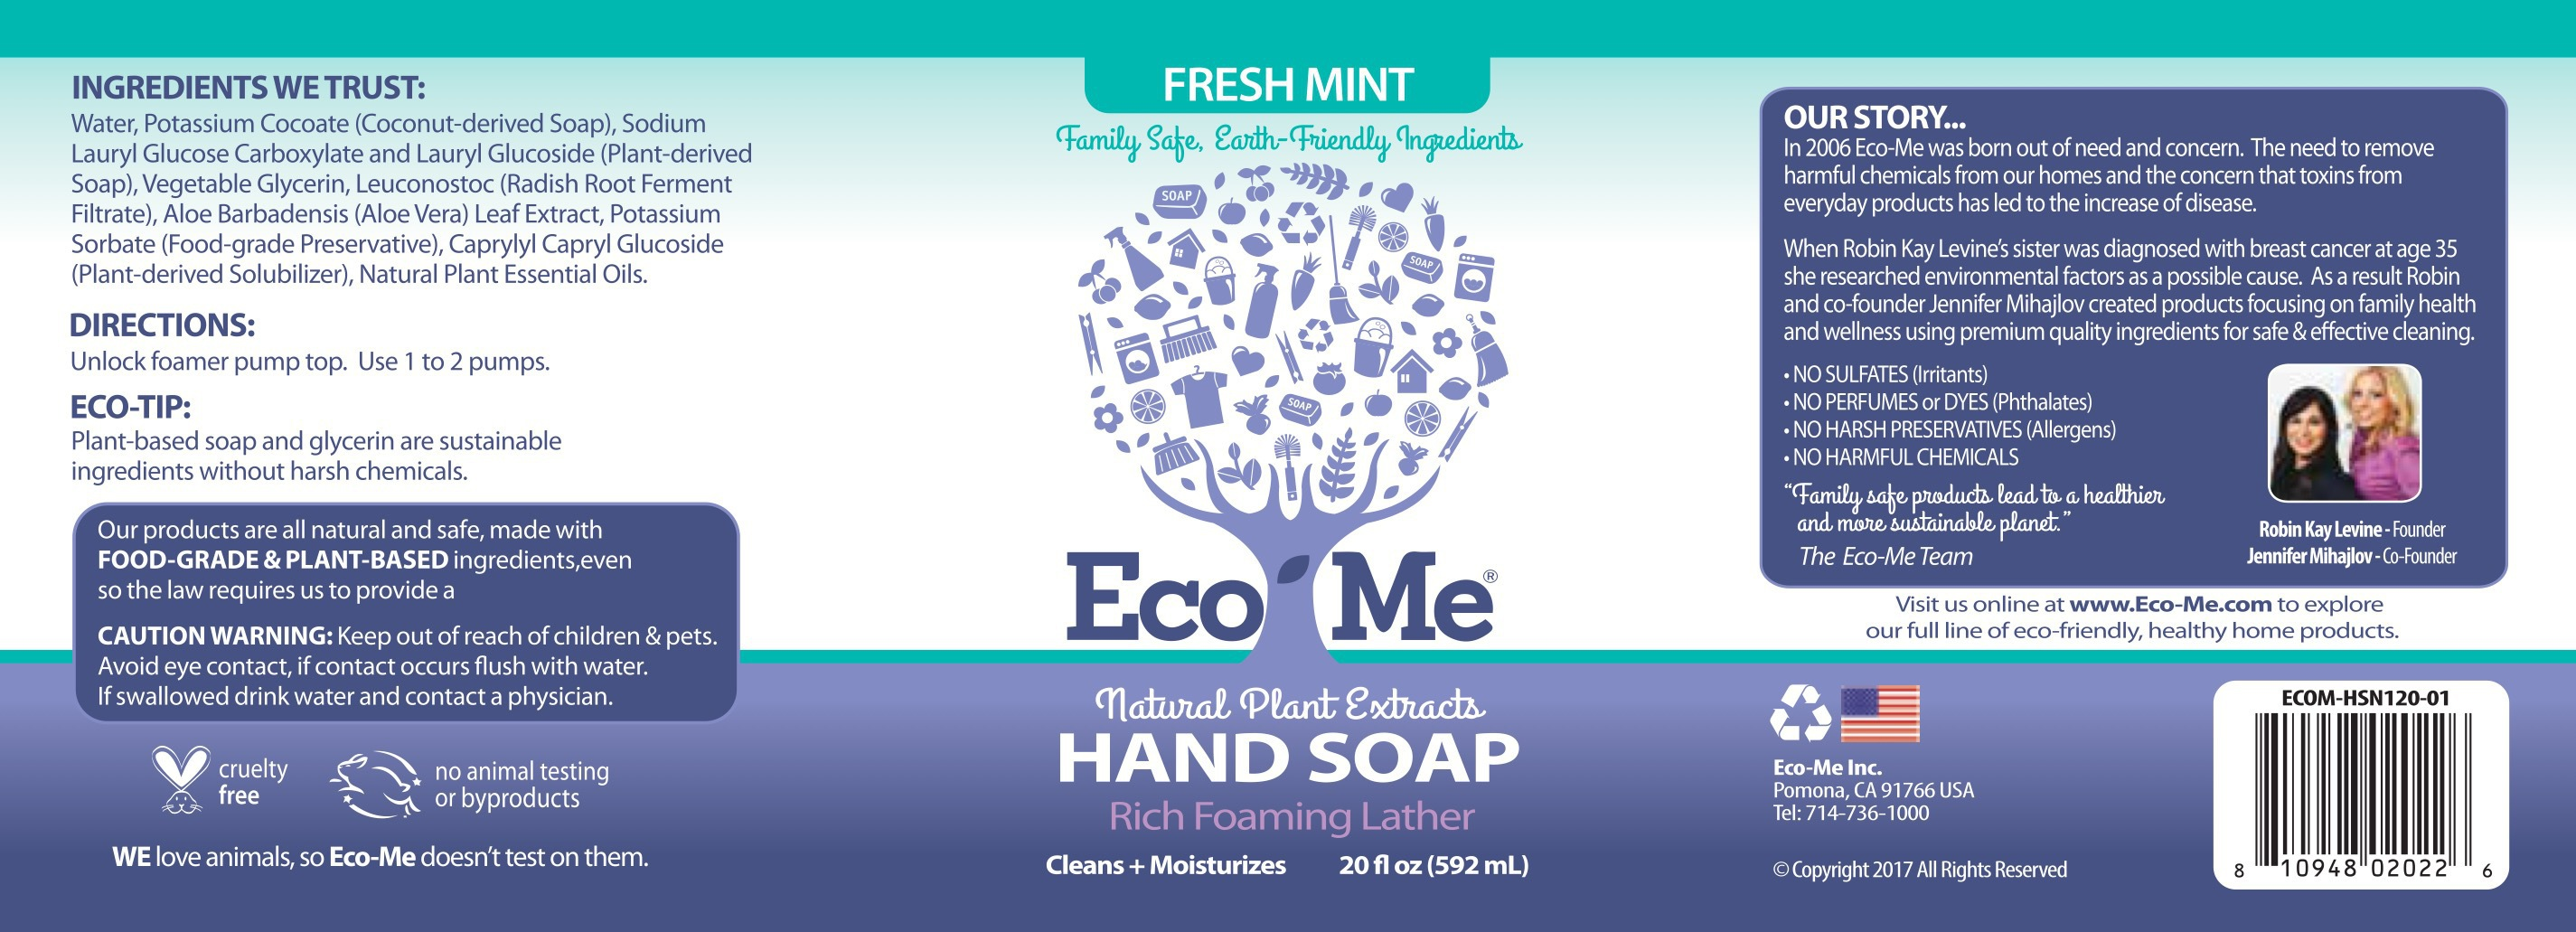 Hand Soap, Fresh Mint | The Natural Products Brands Directory